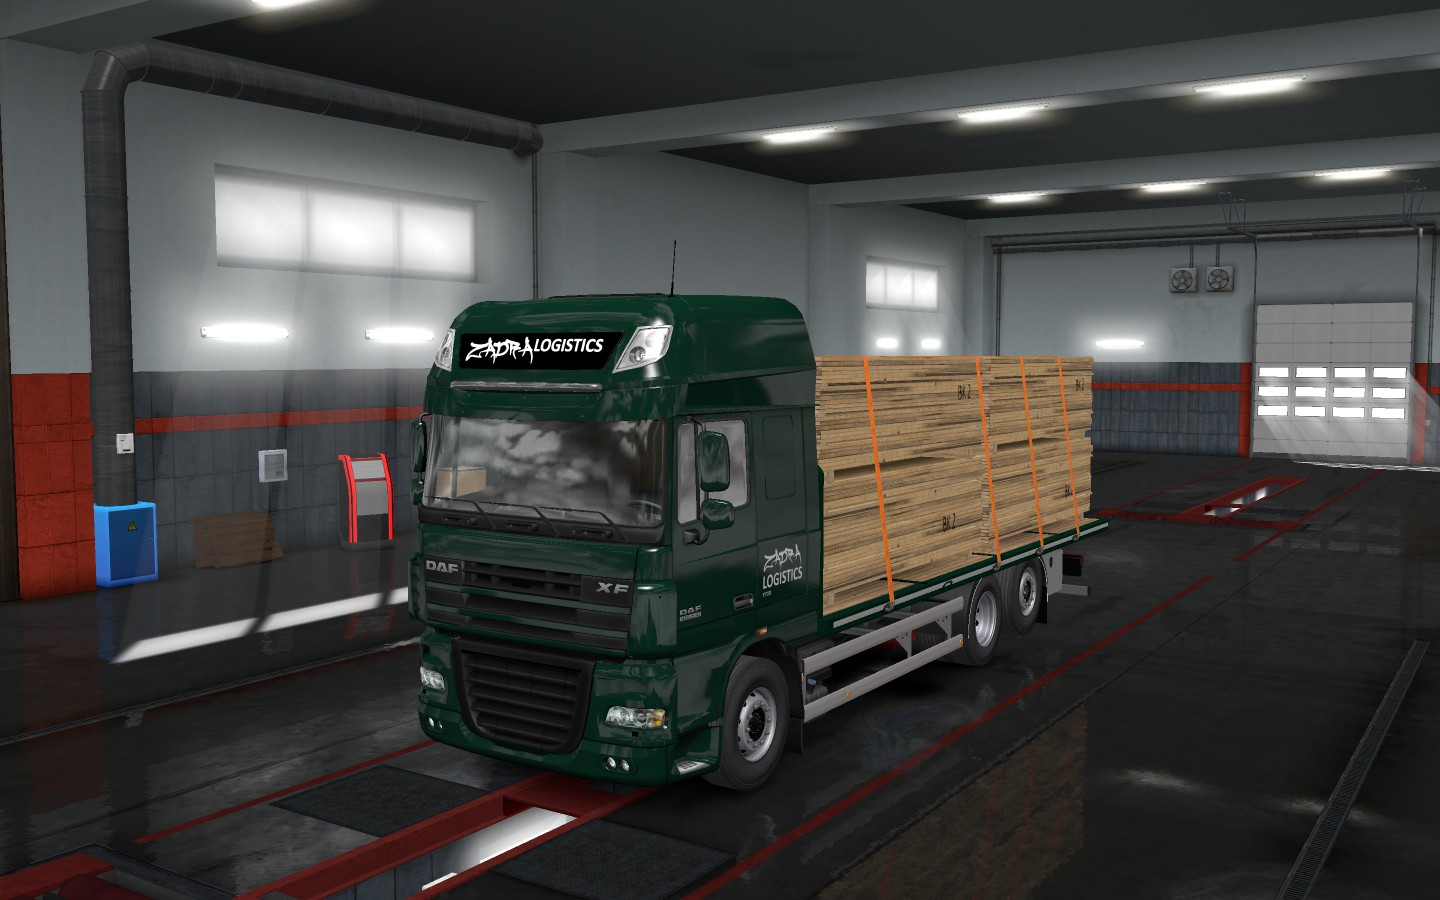 REL] Flatbed Addon For Tandem for Rigid chassis pack for all SCS